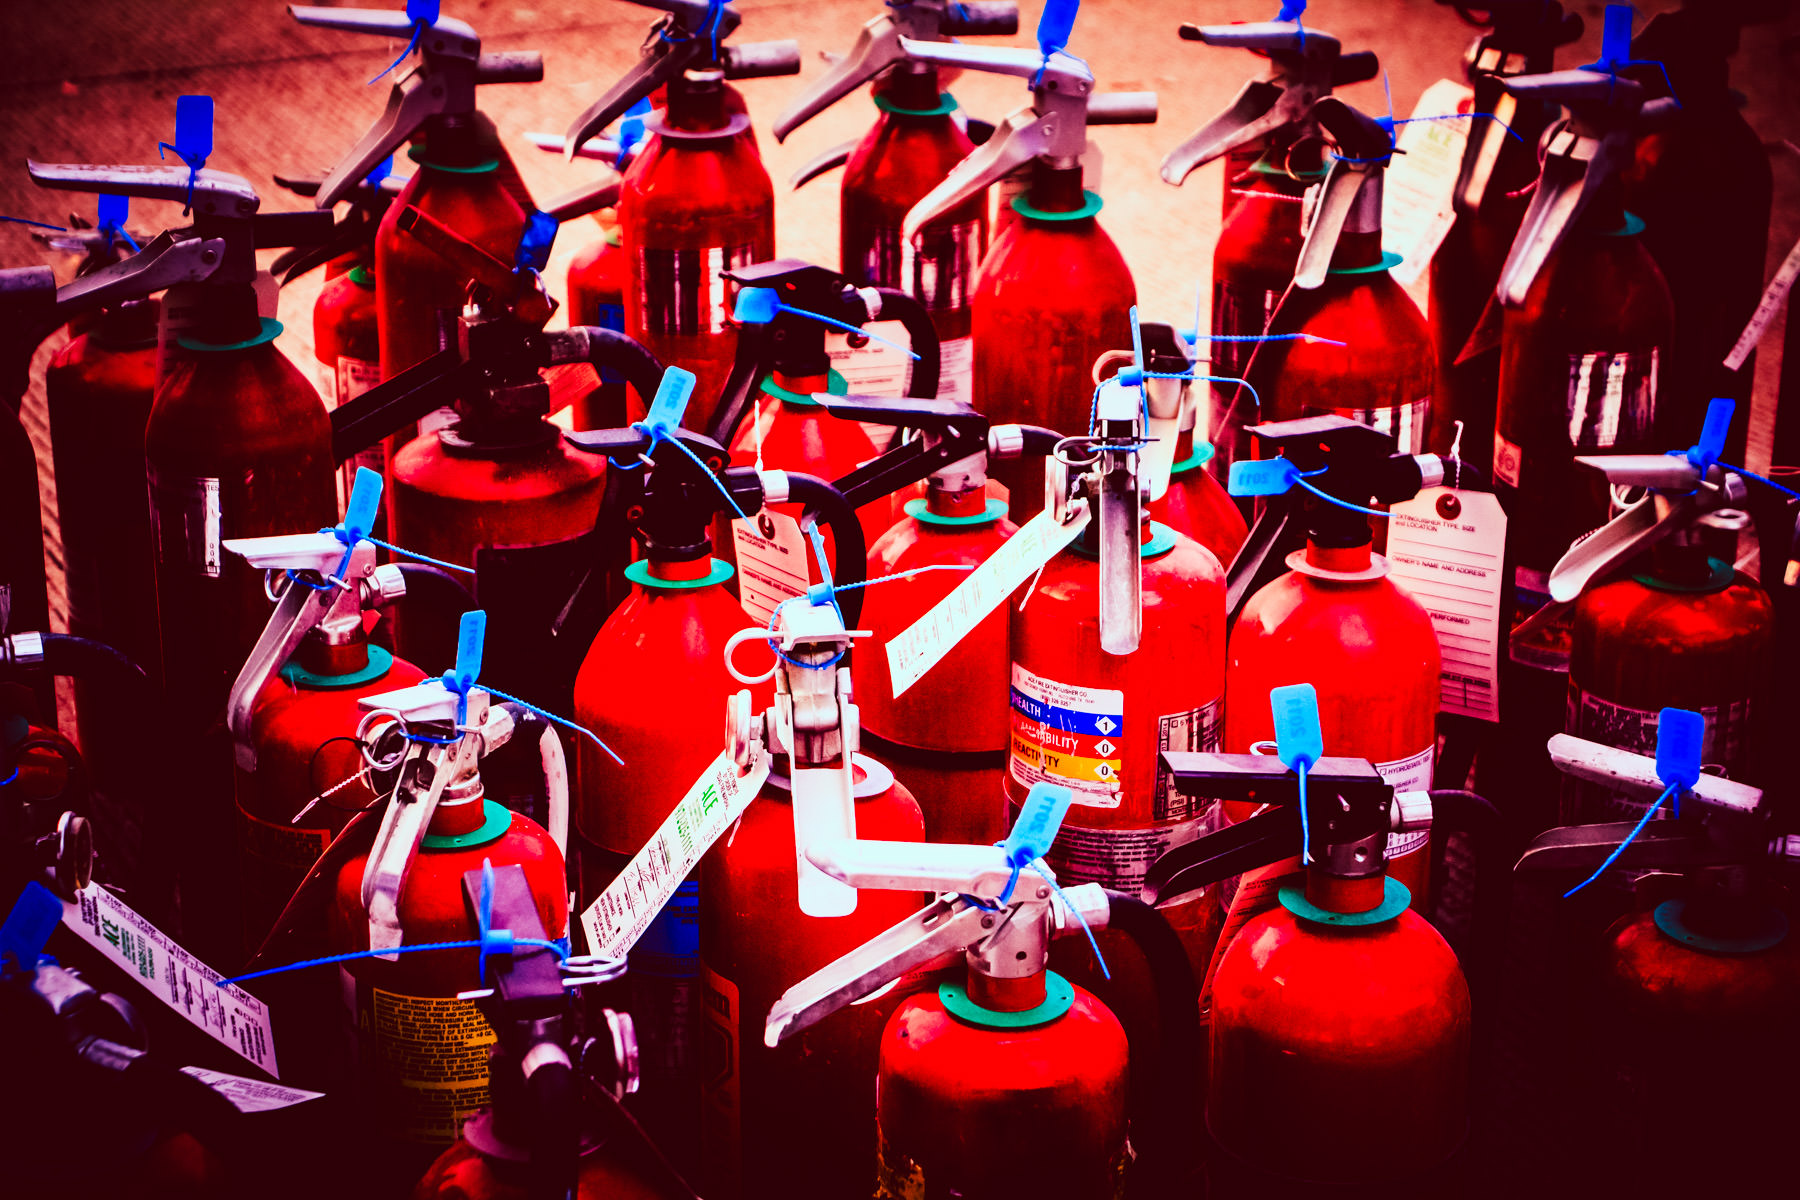 Fire extinguishers ready for strategic distribution around Addison Circle Park in Addison, Texas, for Oktoberfest safety.